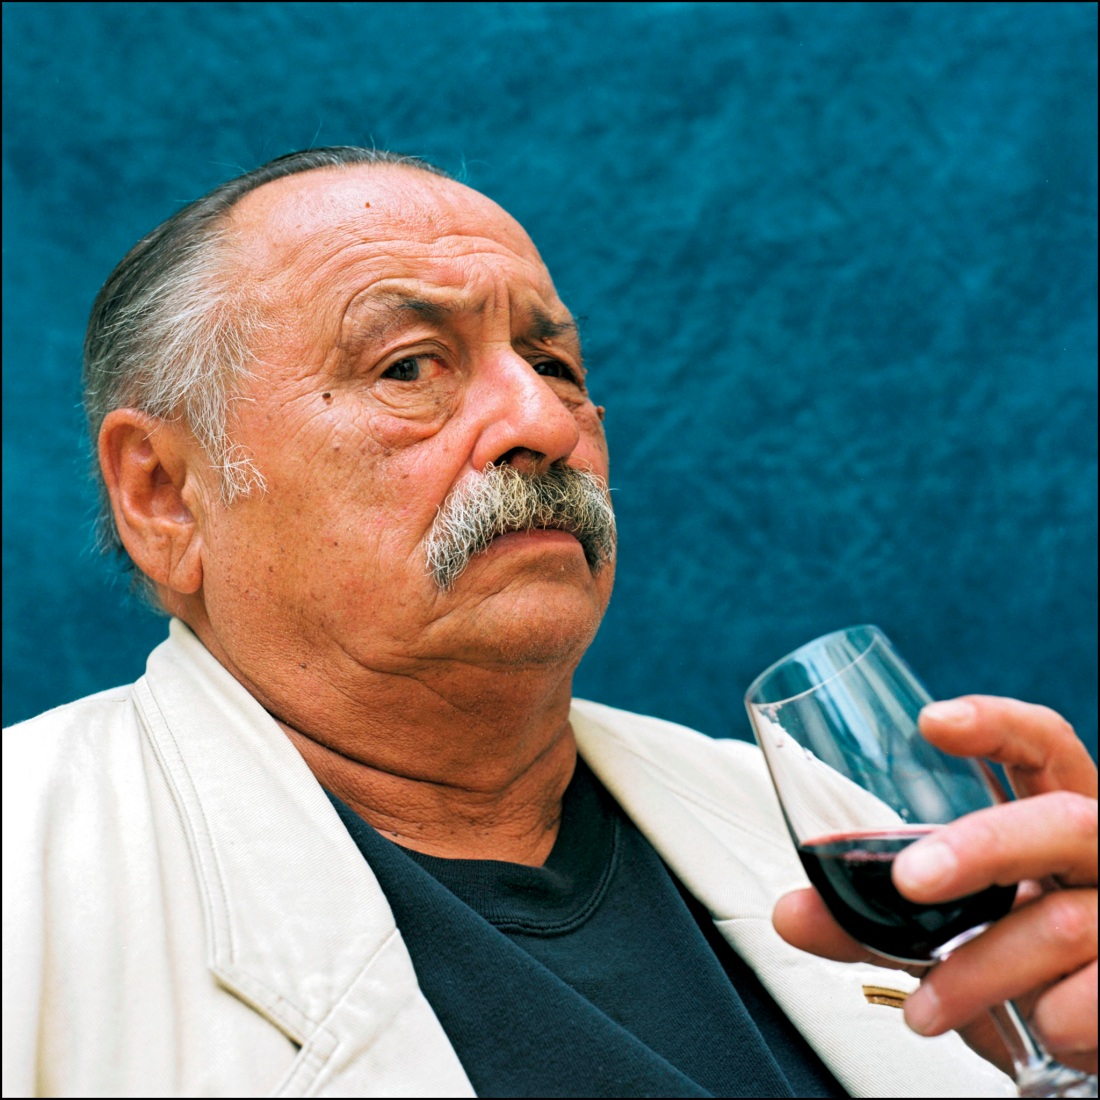 Ulf Andersen Archive - Jim Harrison